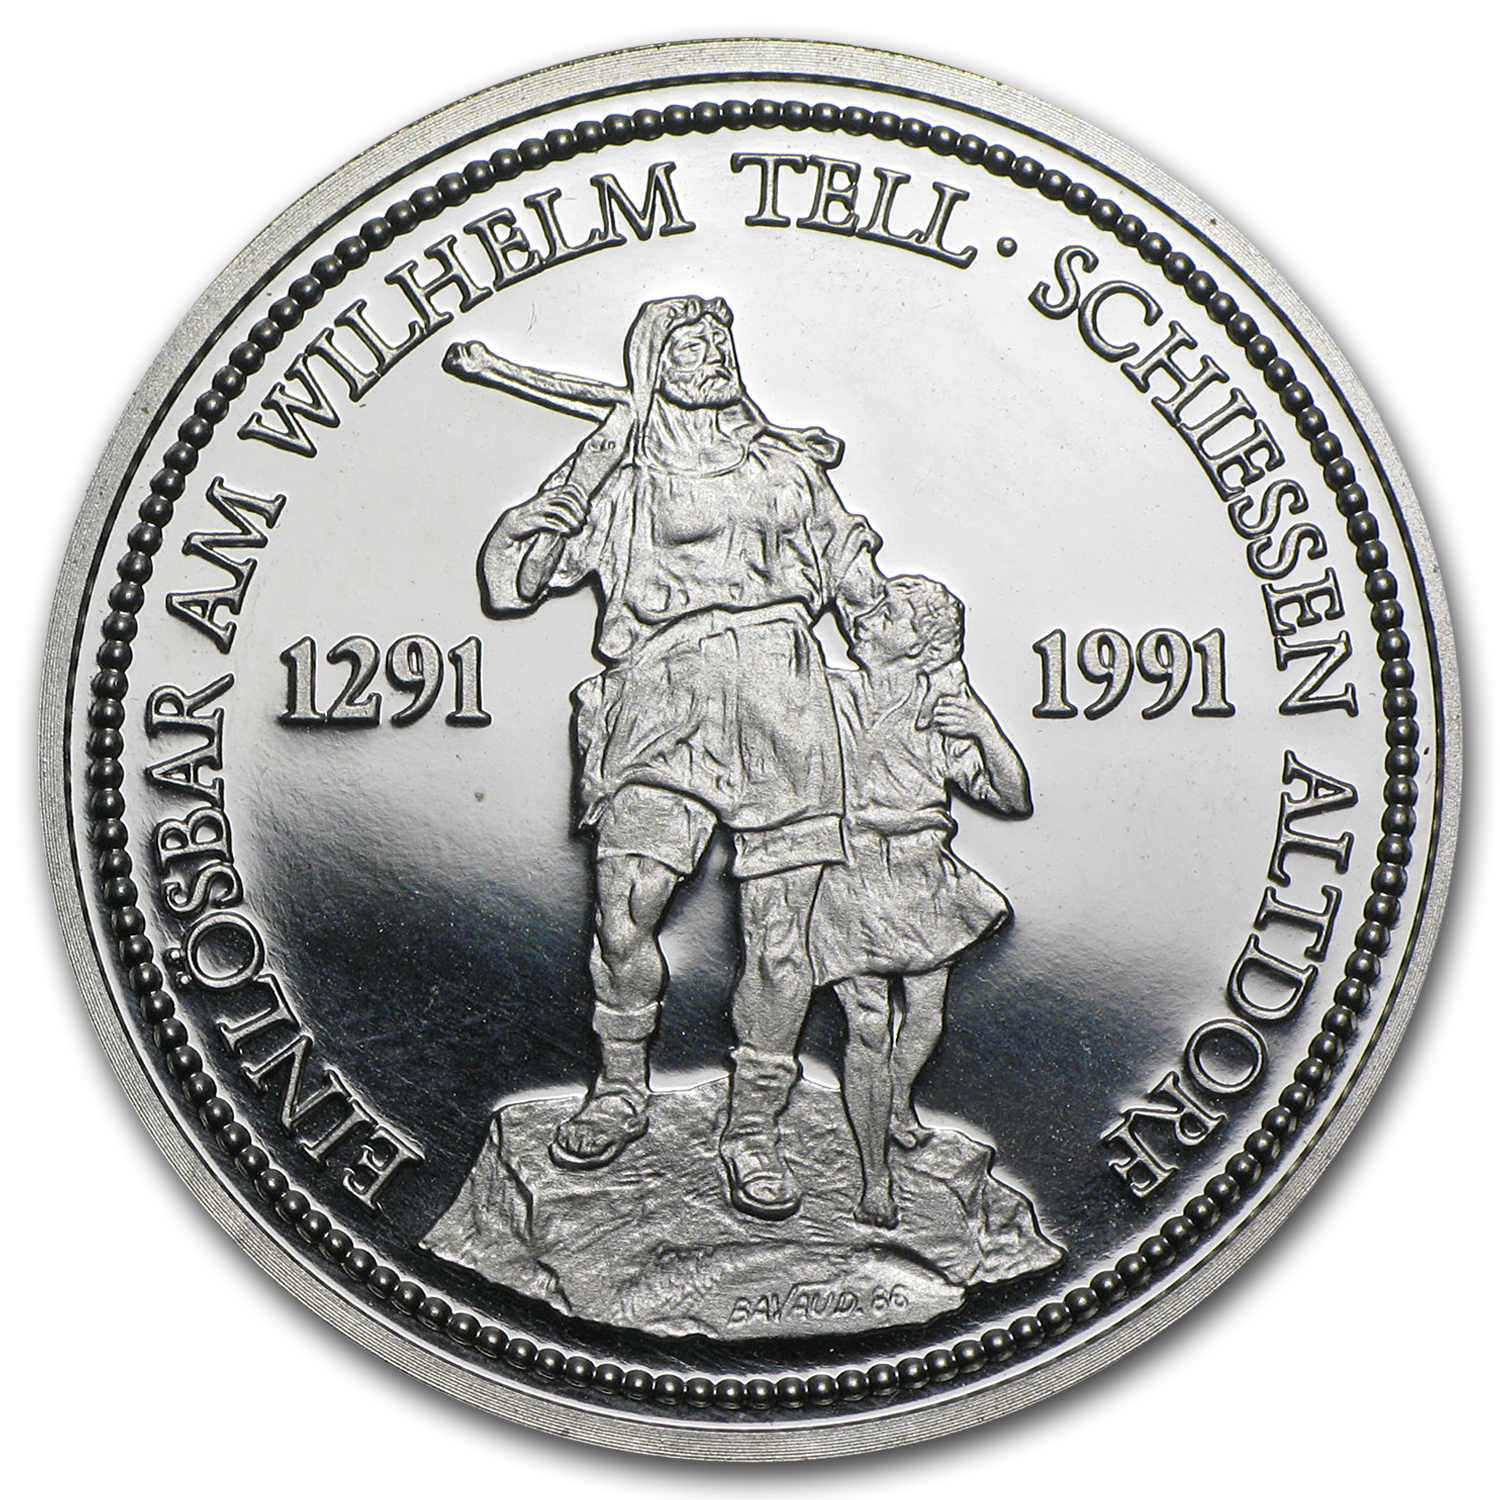 Switzerland 1 oz Platinum Shooting Thaler Proof